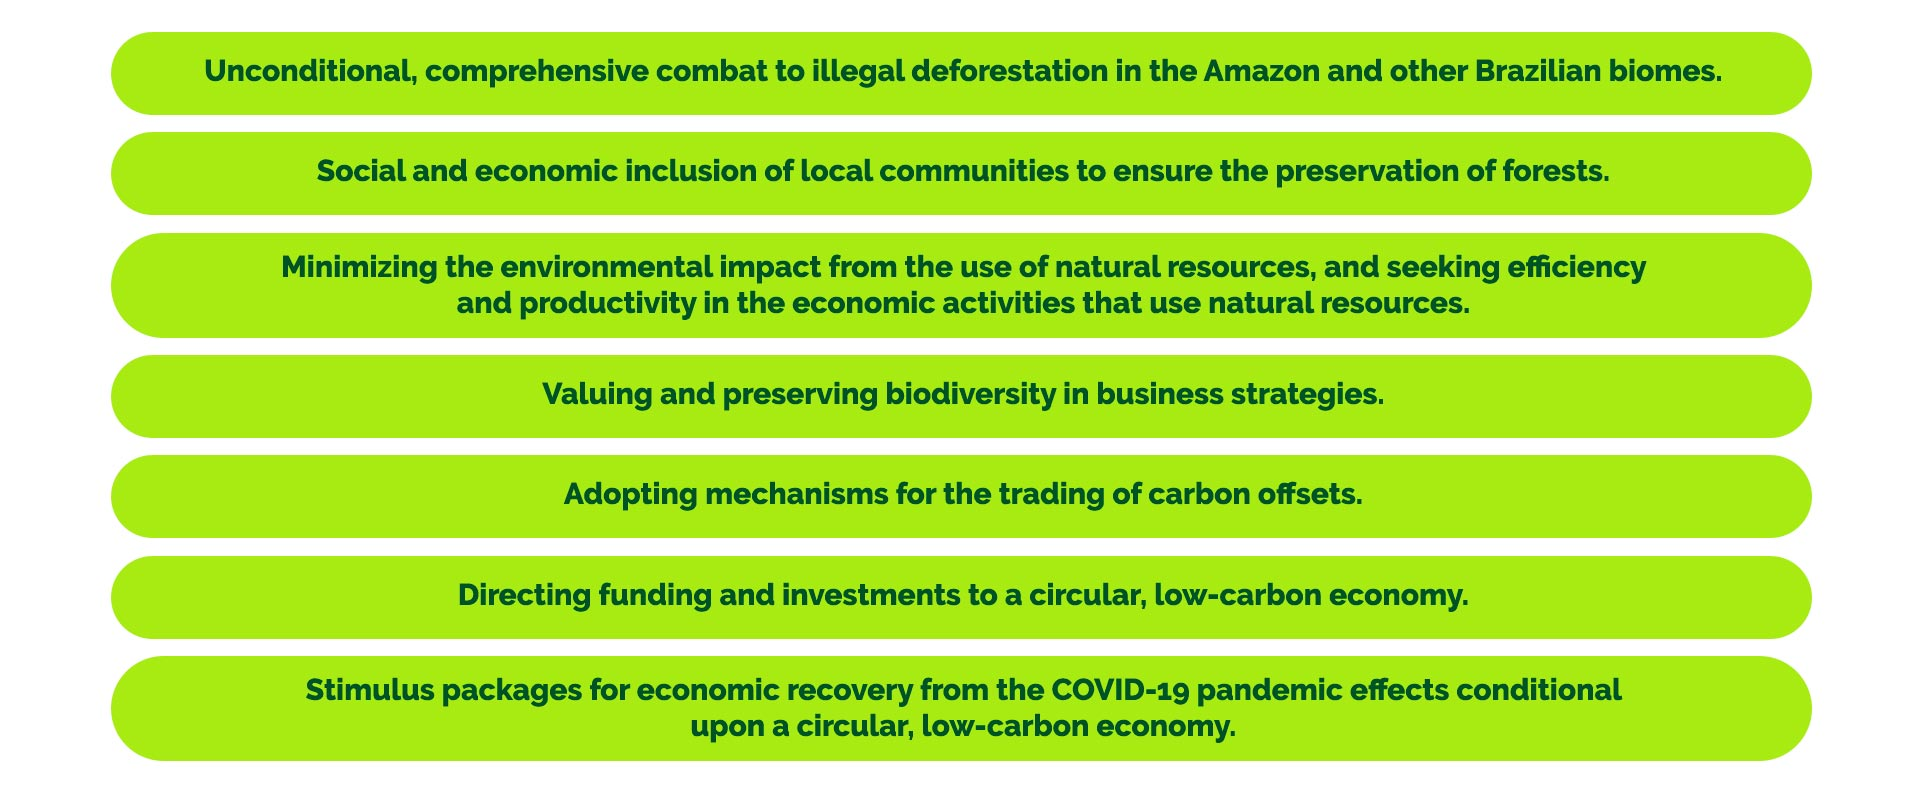 The actions promoted will be based on seven axes, which take into account the current extraordinary situation: - Unconditional, comprehensive combat to illegal deforestation in the Amazon and other Brazilian. biomes - Social and economic inclusion of local communities to ensure the preservation of forests. - Minimizing the environmental impact from the use of natural resources, and seeking efficiency and productivity in the economic activities that use natural resources. - Valuing and preserving biodiversity in business strategies. - Adopting mechanisms for the trading of carbon offsets. - Directing funding and investments to a circular, low-carbon economy. - Stimulus packages for economic recovery from the COVID-19 pandemic effects conditional upon a circular, low-carbon economy.